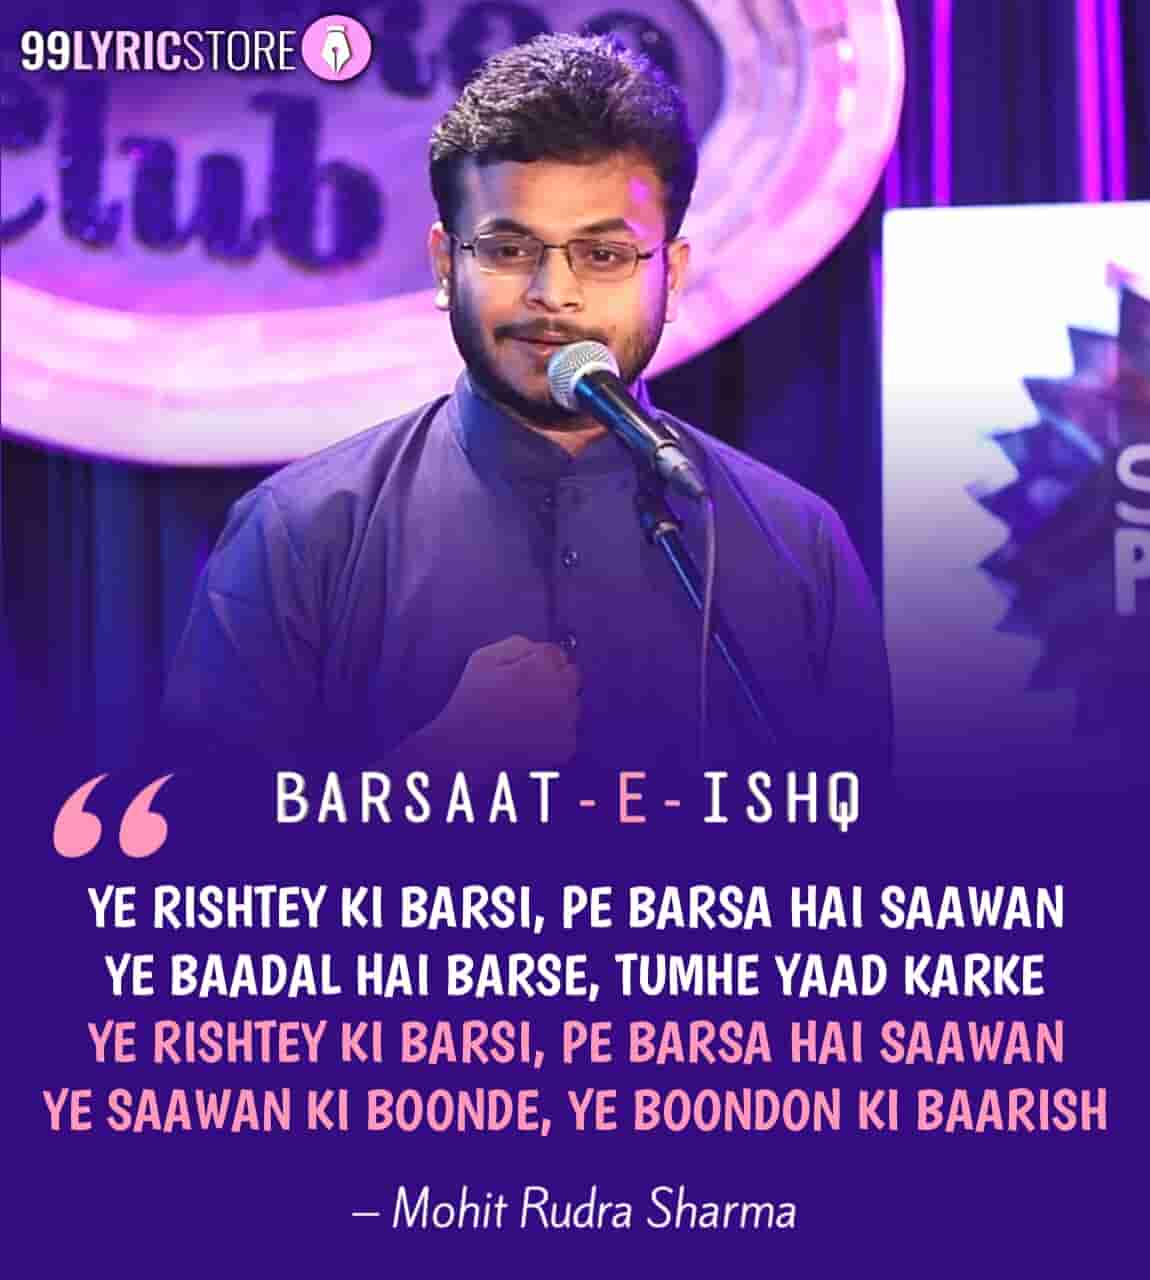 This beautiful poem 'Barsaat-E-Ishq' has written and performed by Mohit Rudra Sharma on the stage of Spill Poetry. Baksheesh Singh include some slight music by his guitar which refinement the beauty of this poem.